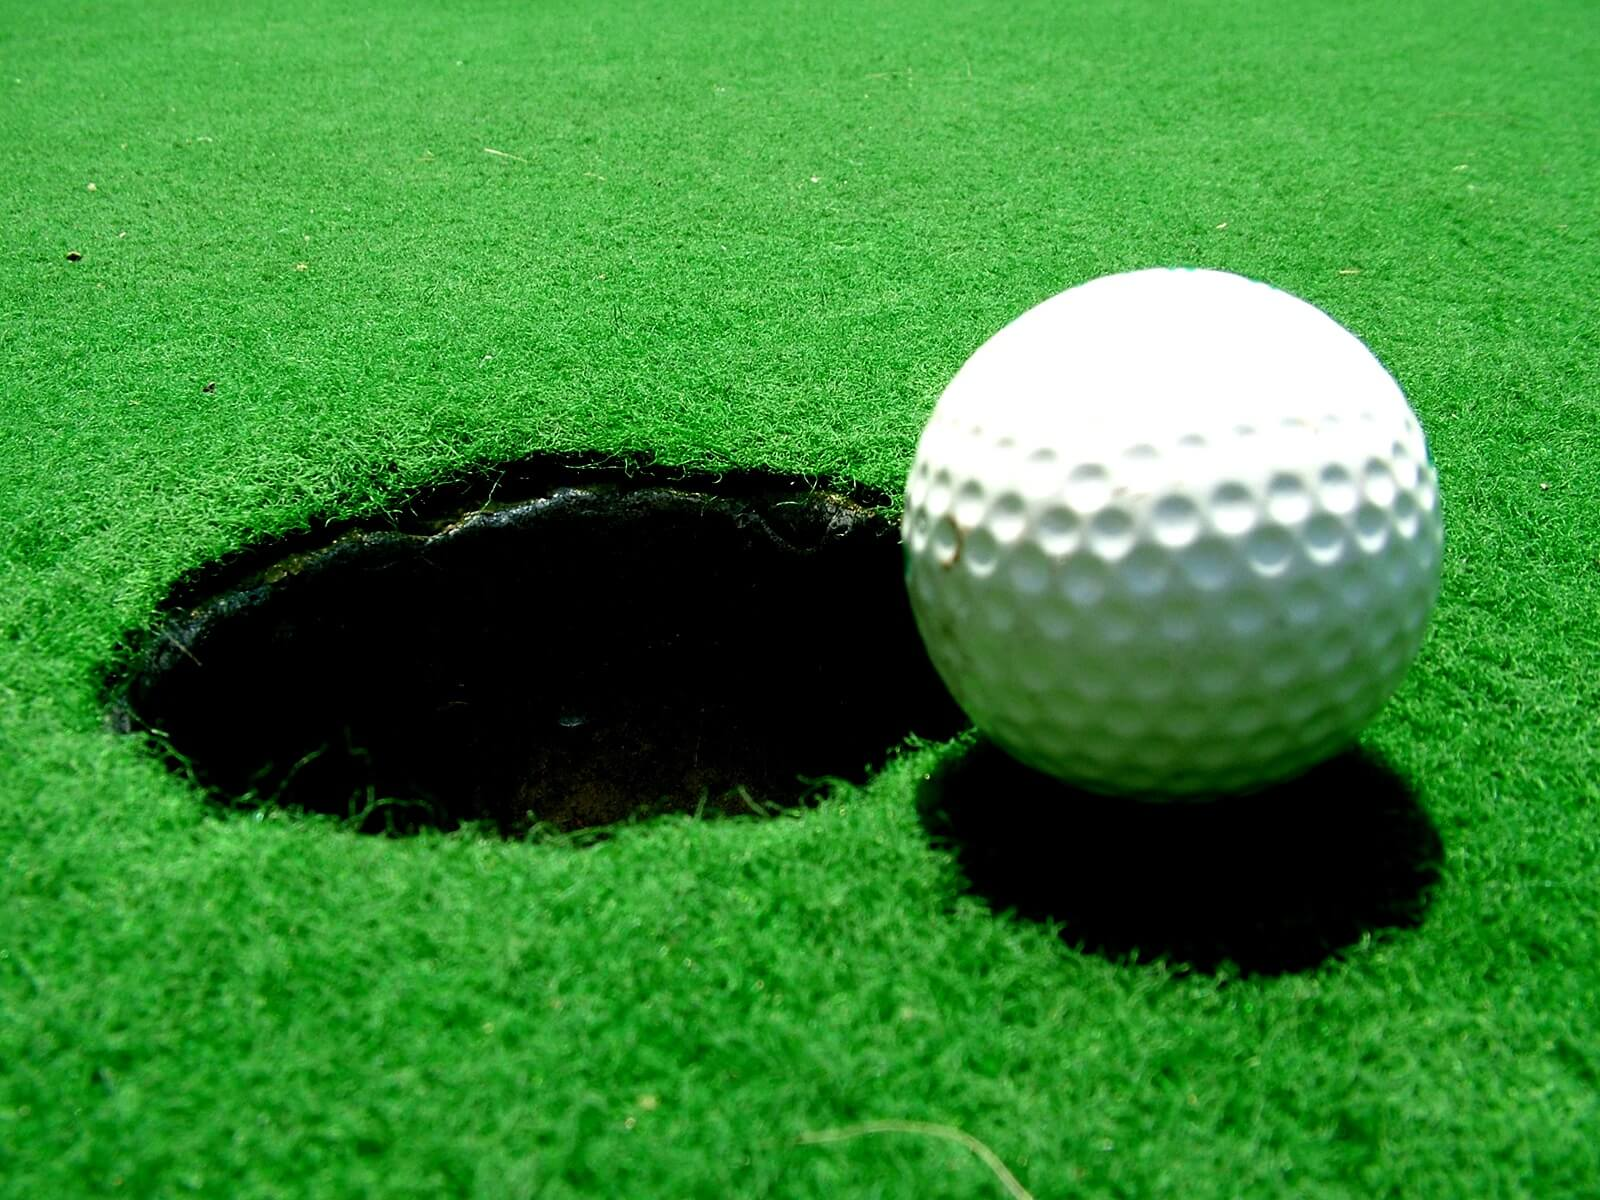 Golfball - Score At The Top